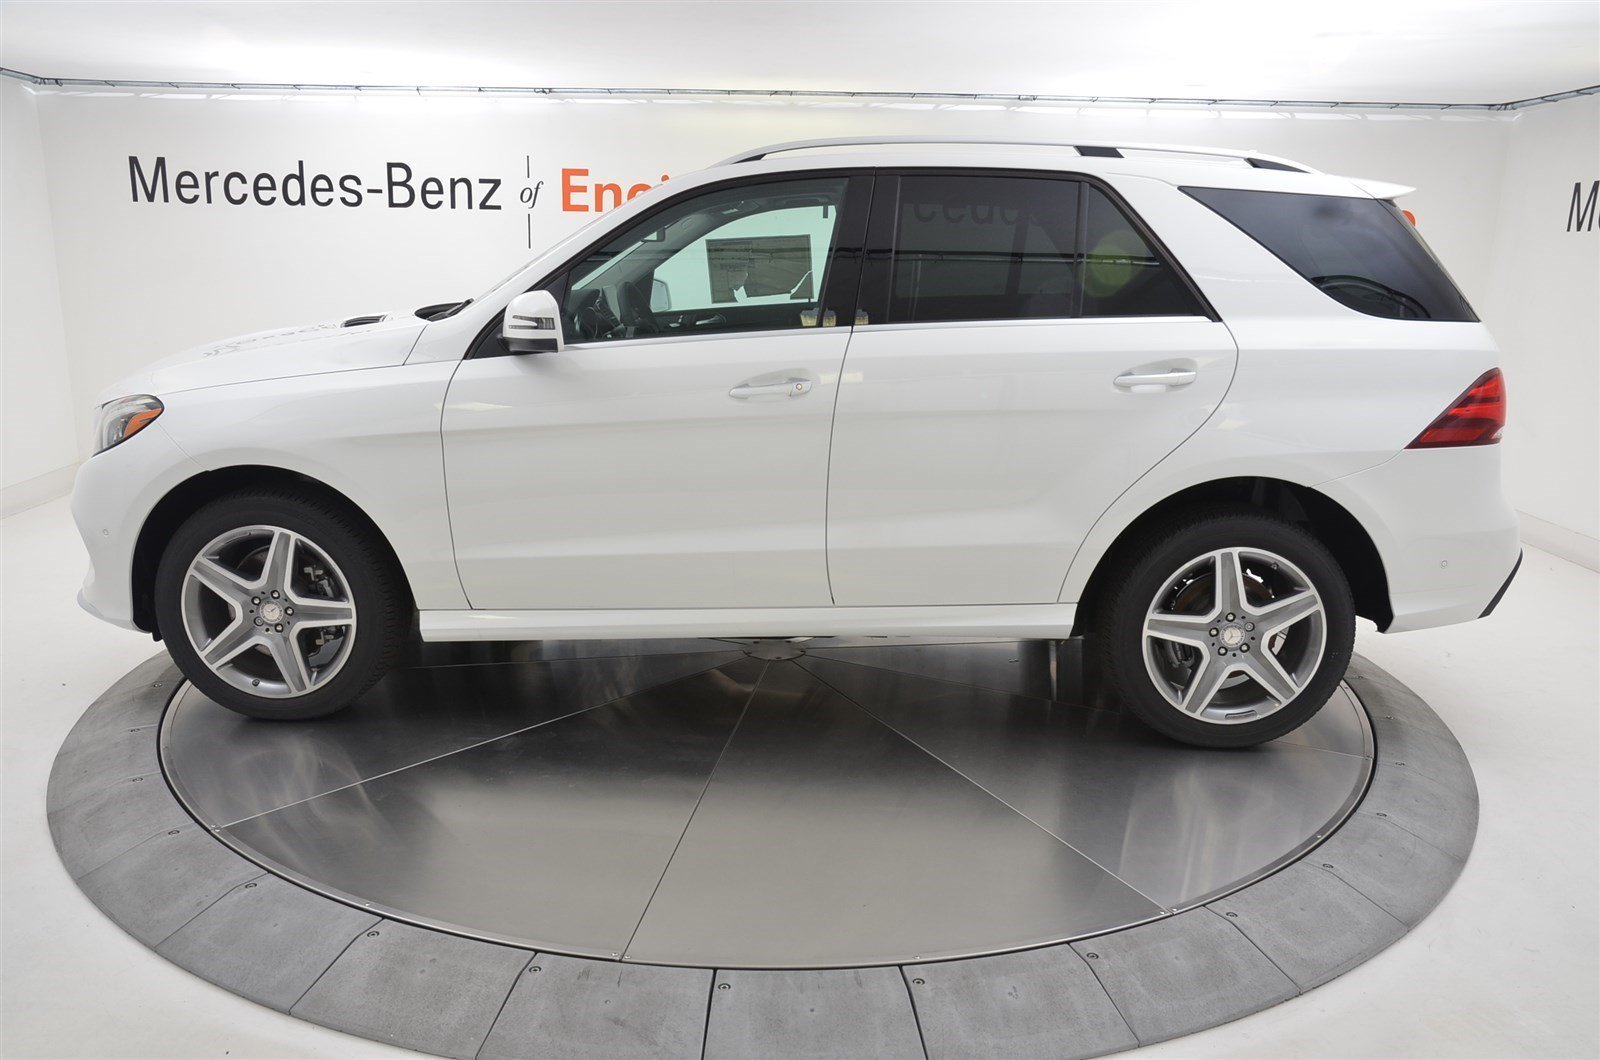 New 2016 mercedes benz gle gle400 4matic sport utility in for 2016 mercedes benz gle400 4matic